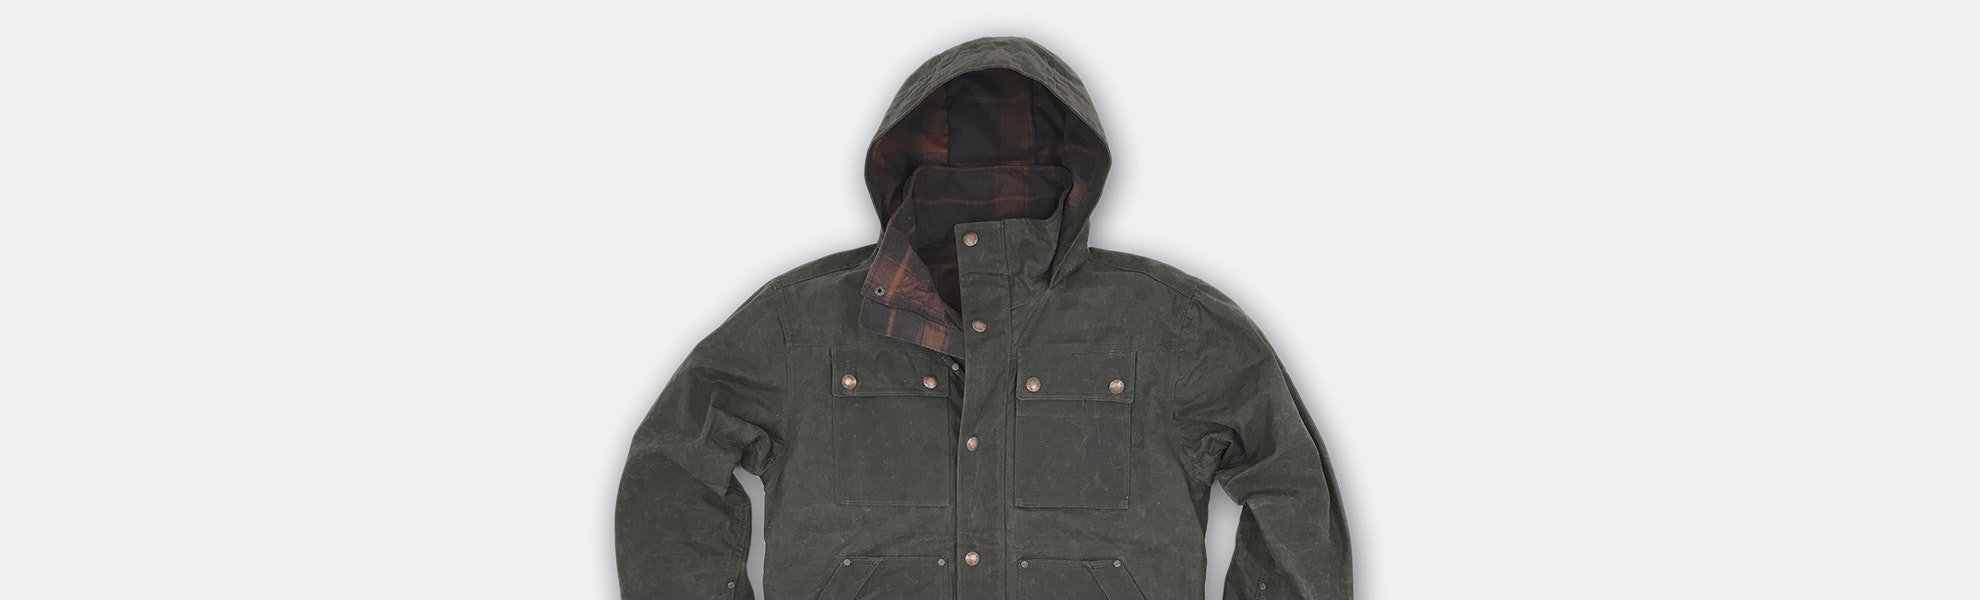 WILD Outdoor Electric Company Parka